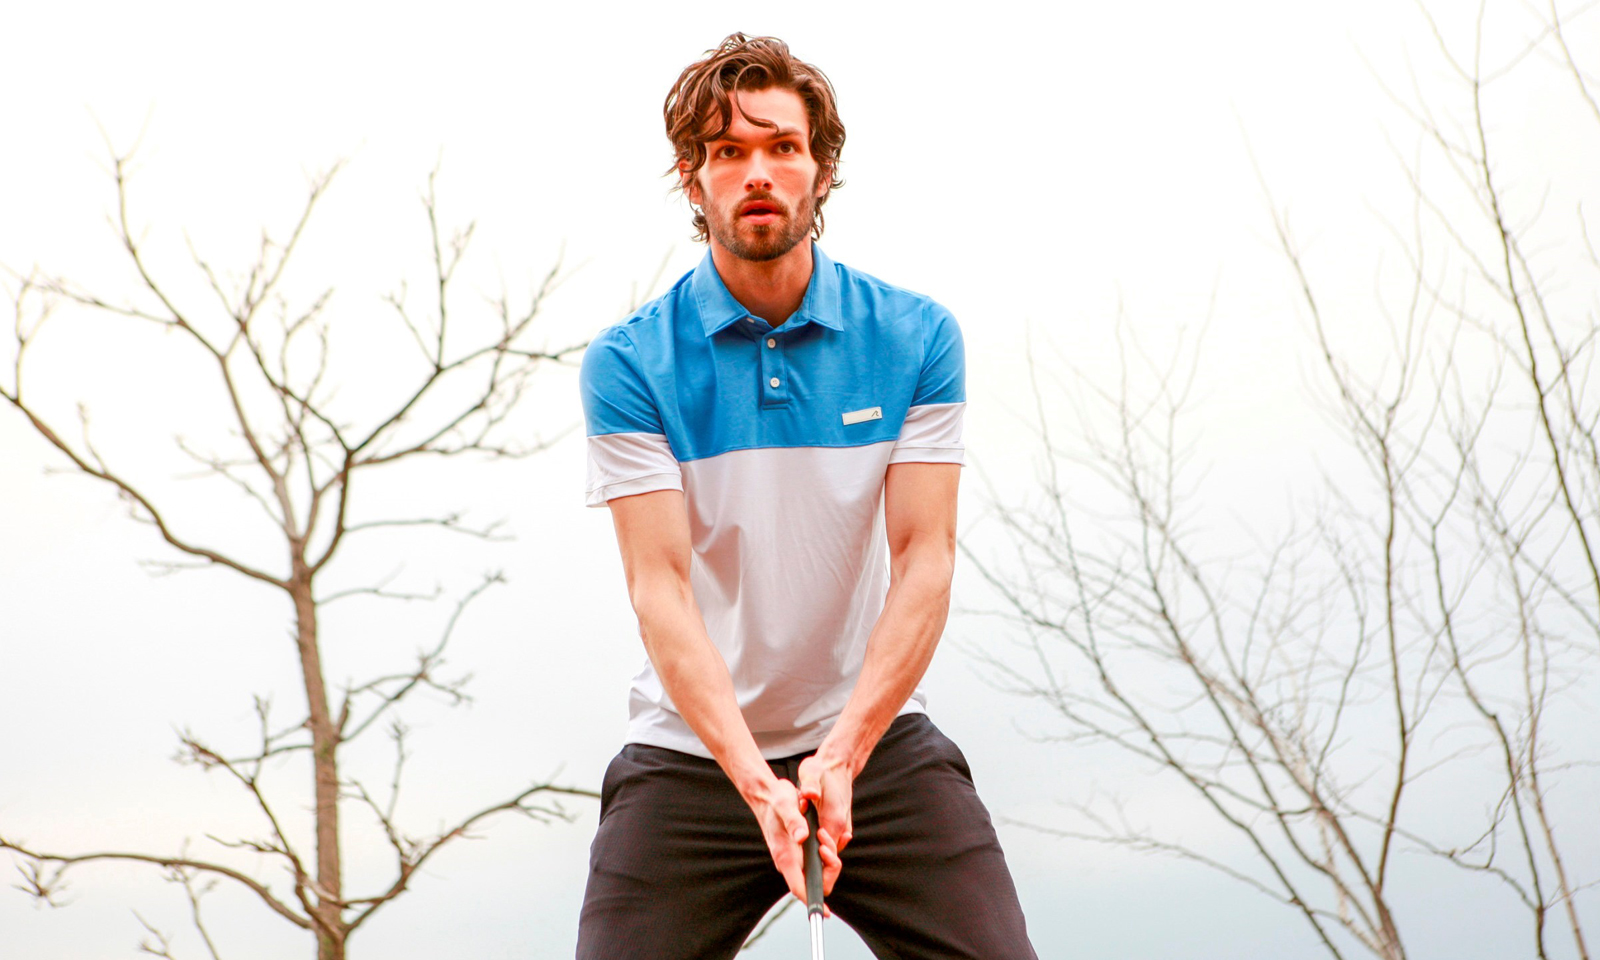 A round with Andrew Redvanly, the man behind New Jersey's stylish performance wear brand for the modern athlete